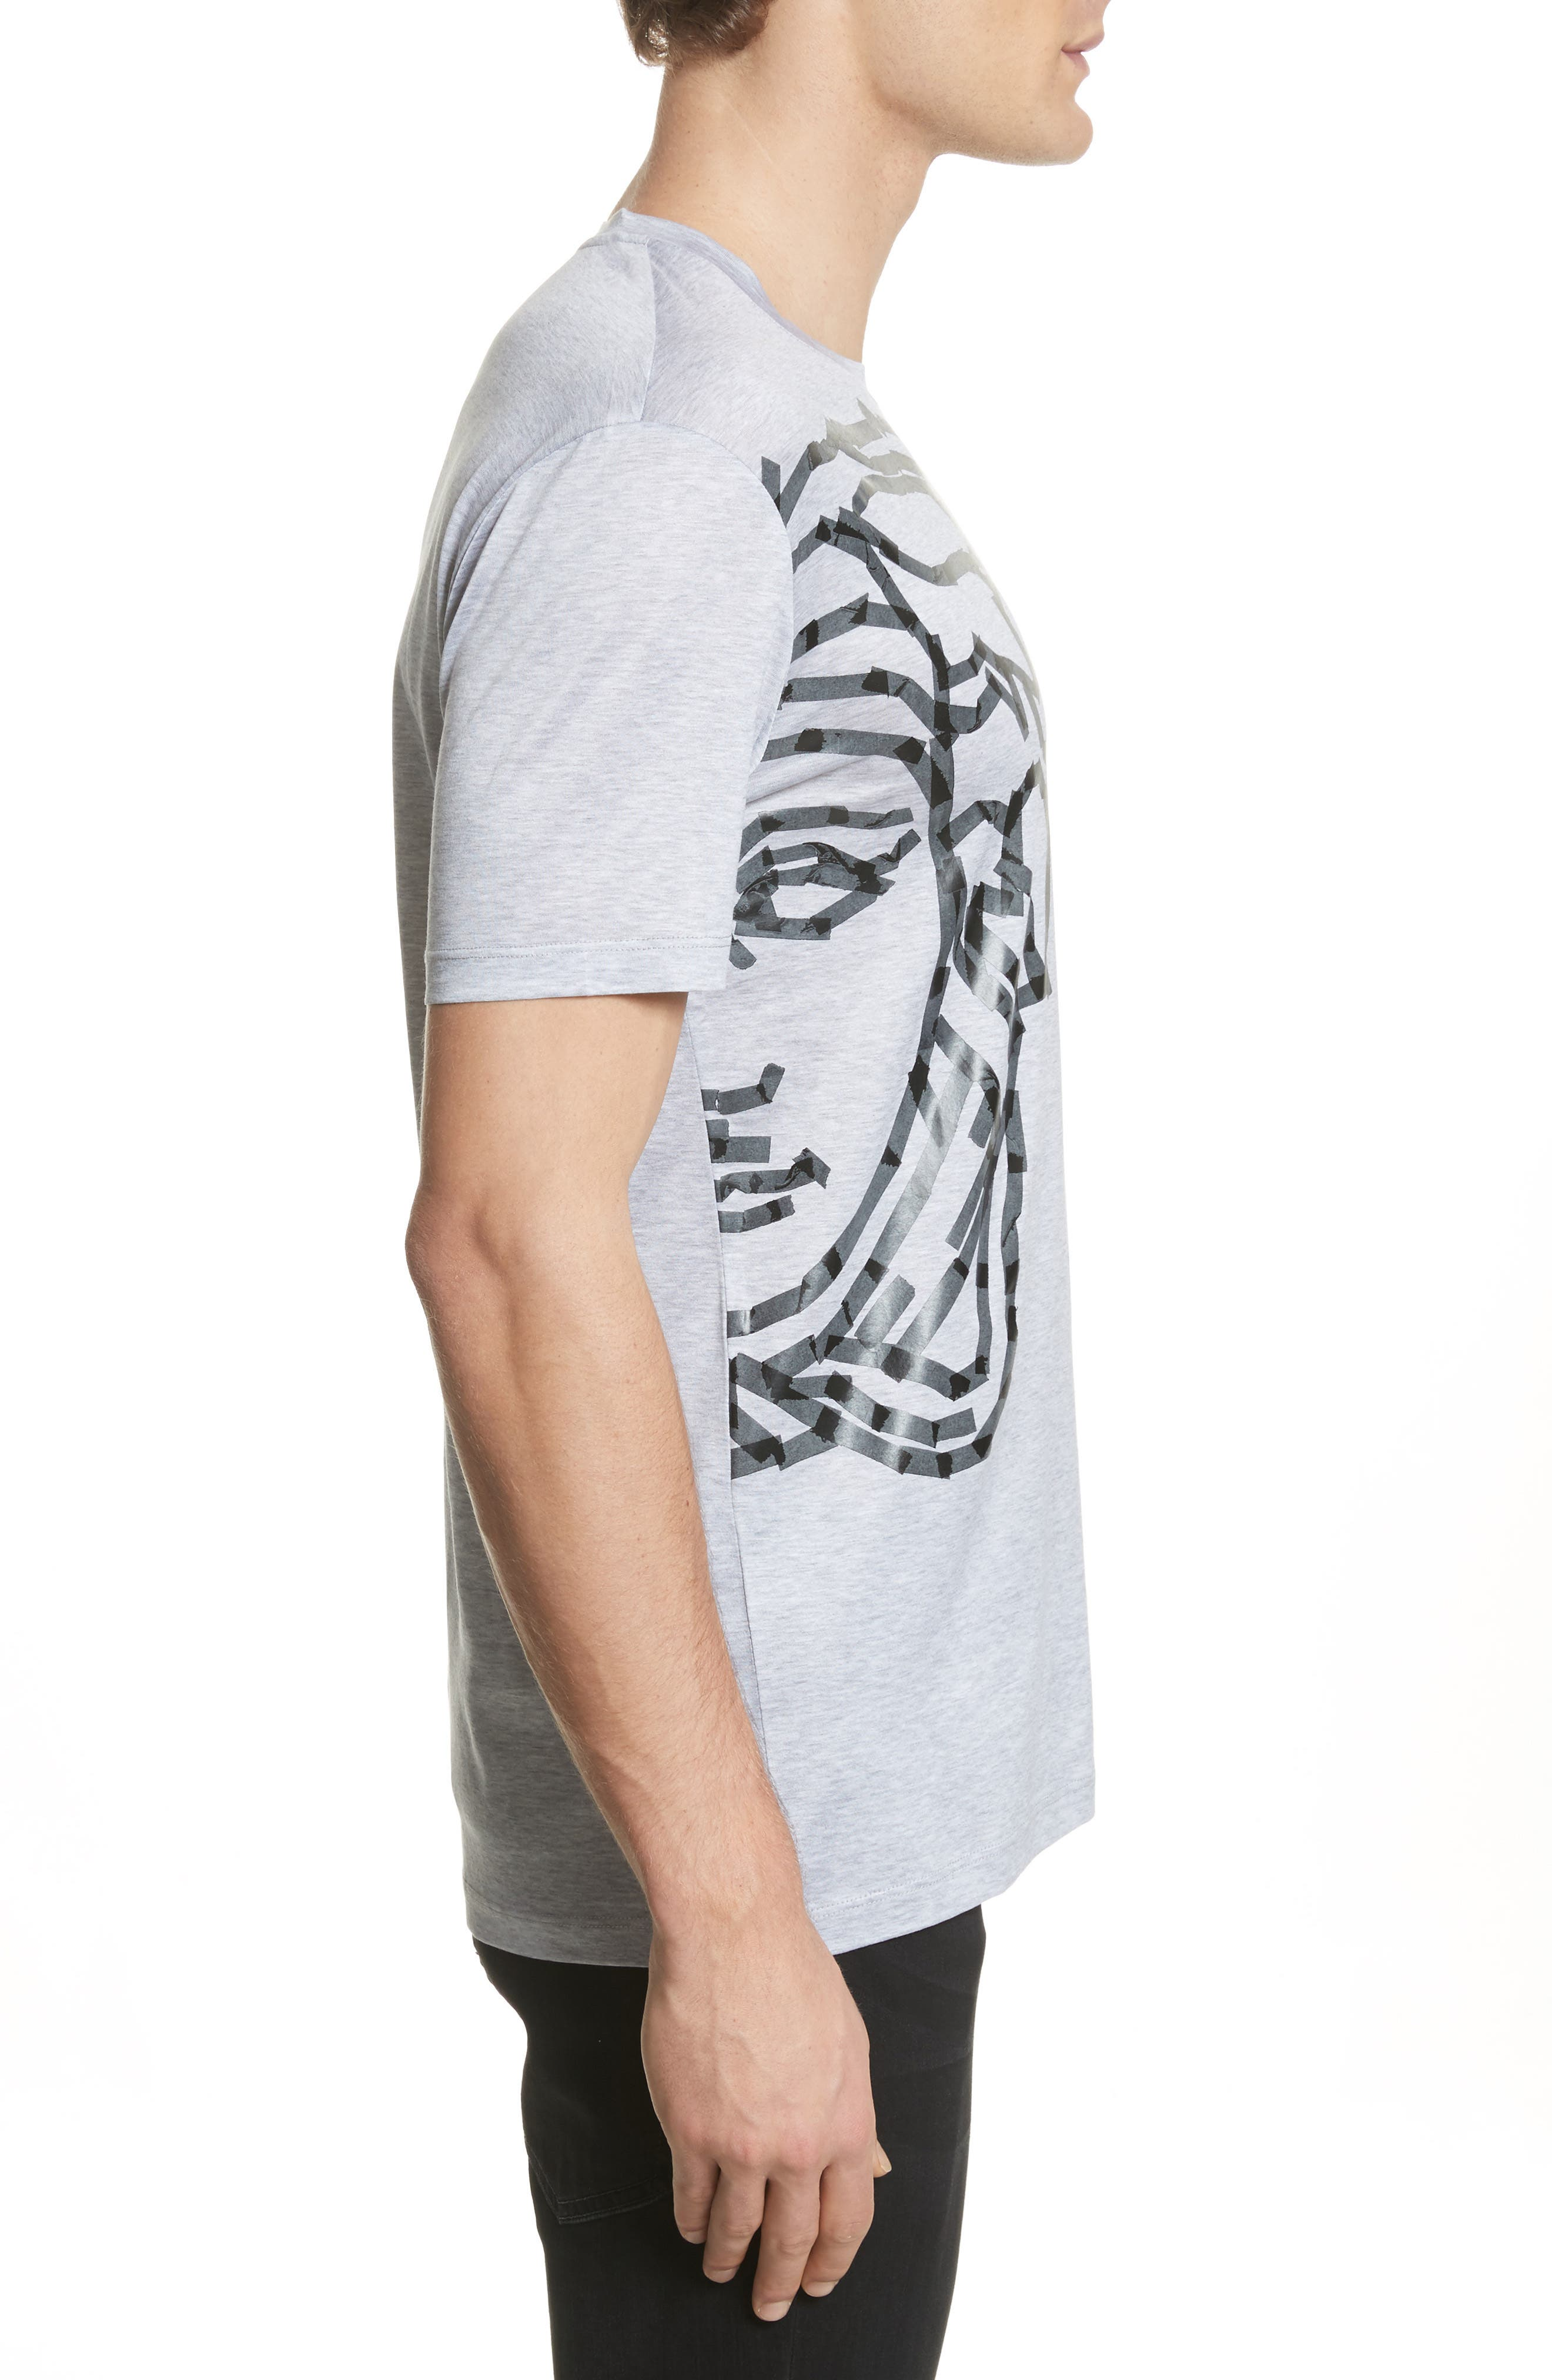 Medusa Tape Graphic T-Shirt,                             Alternate thumbnail 3, color,                             Medium Grey